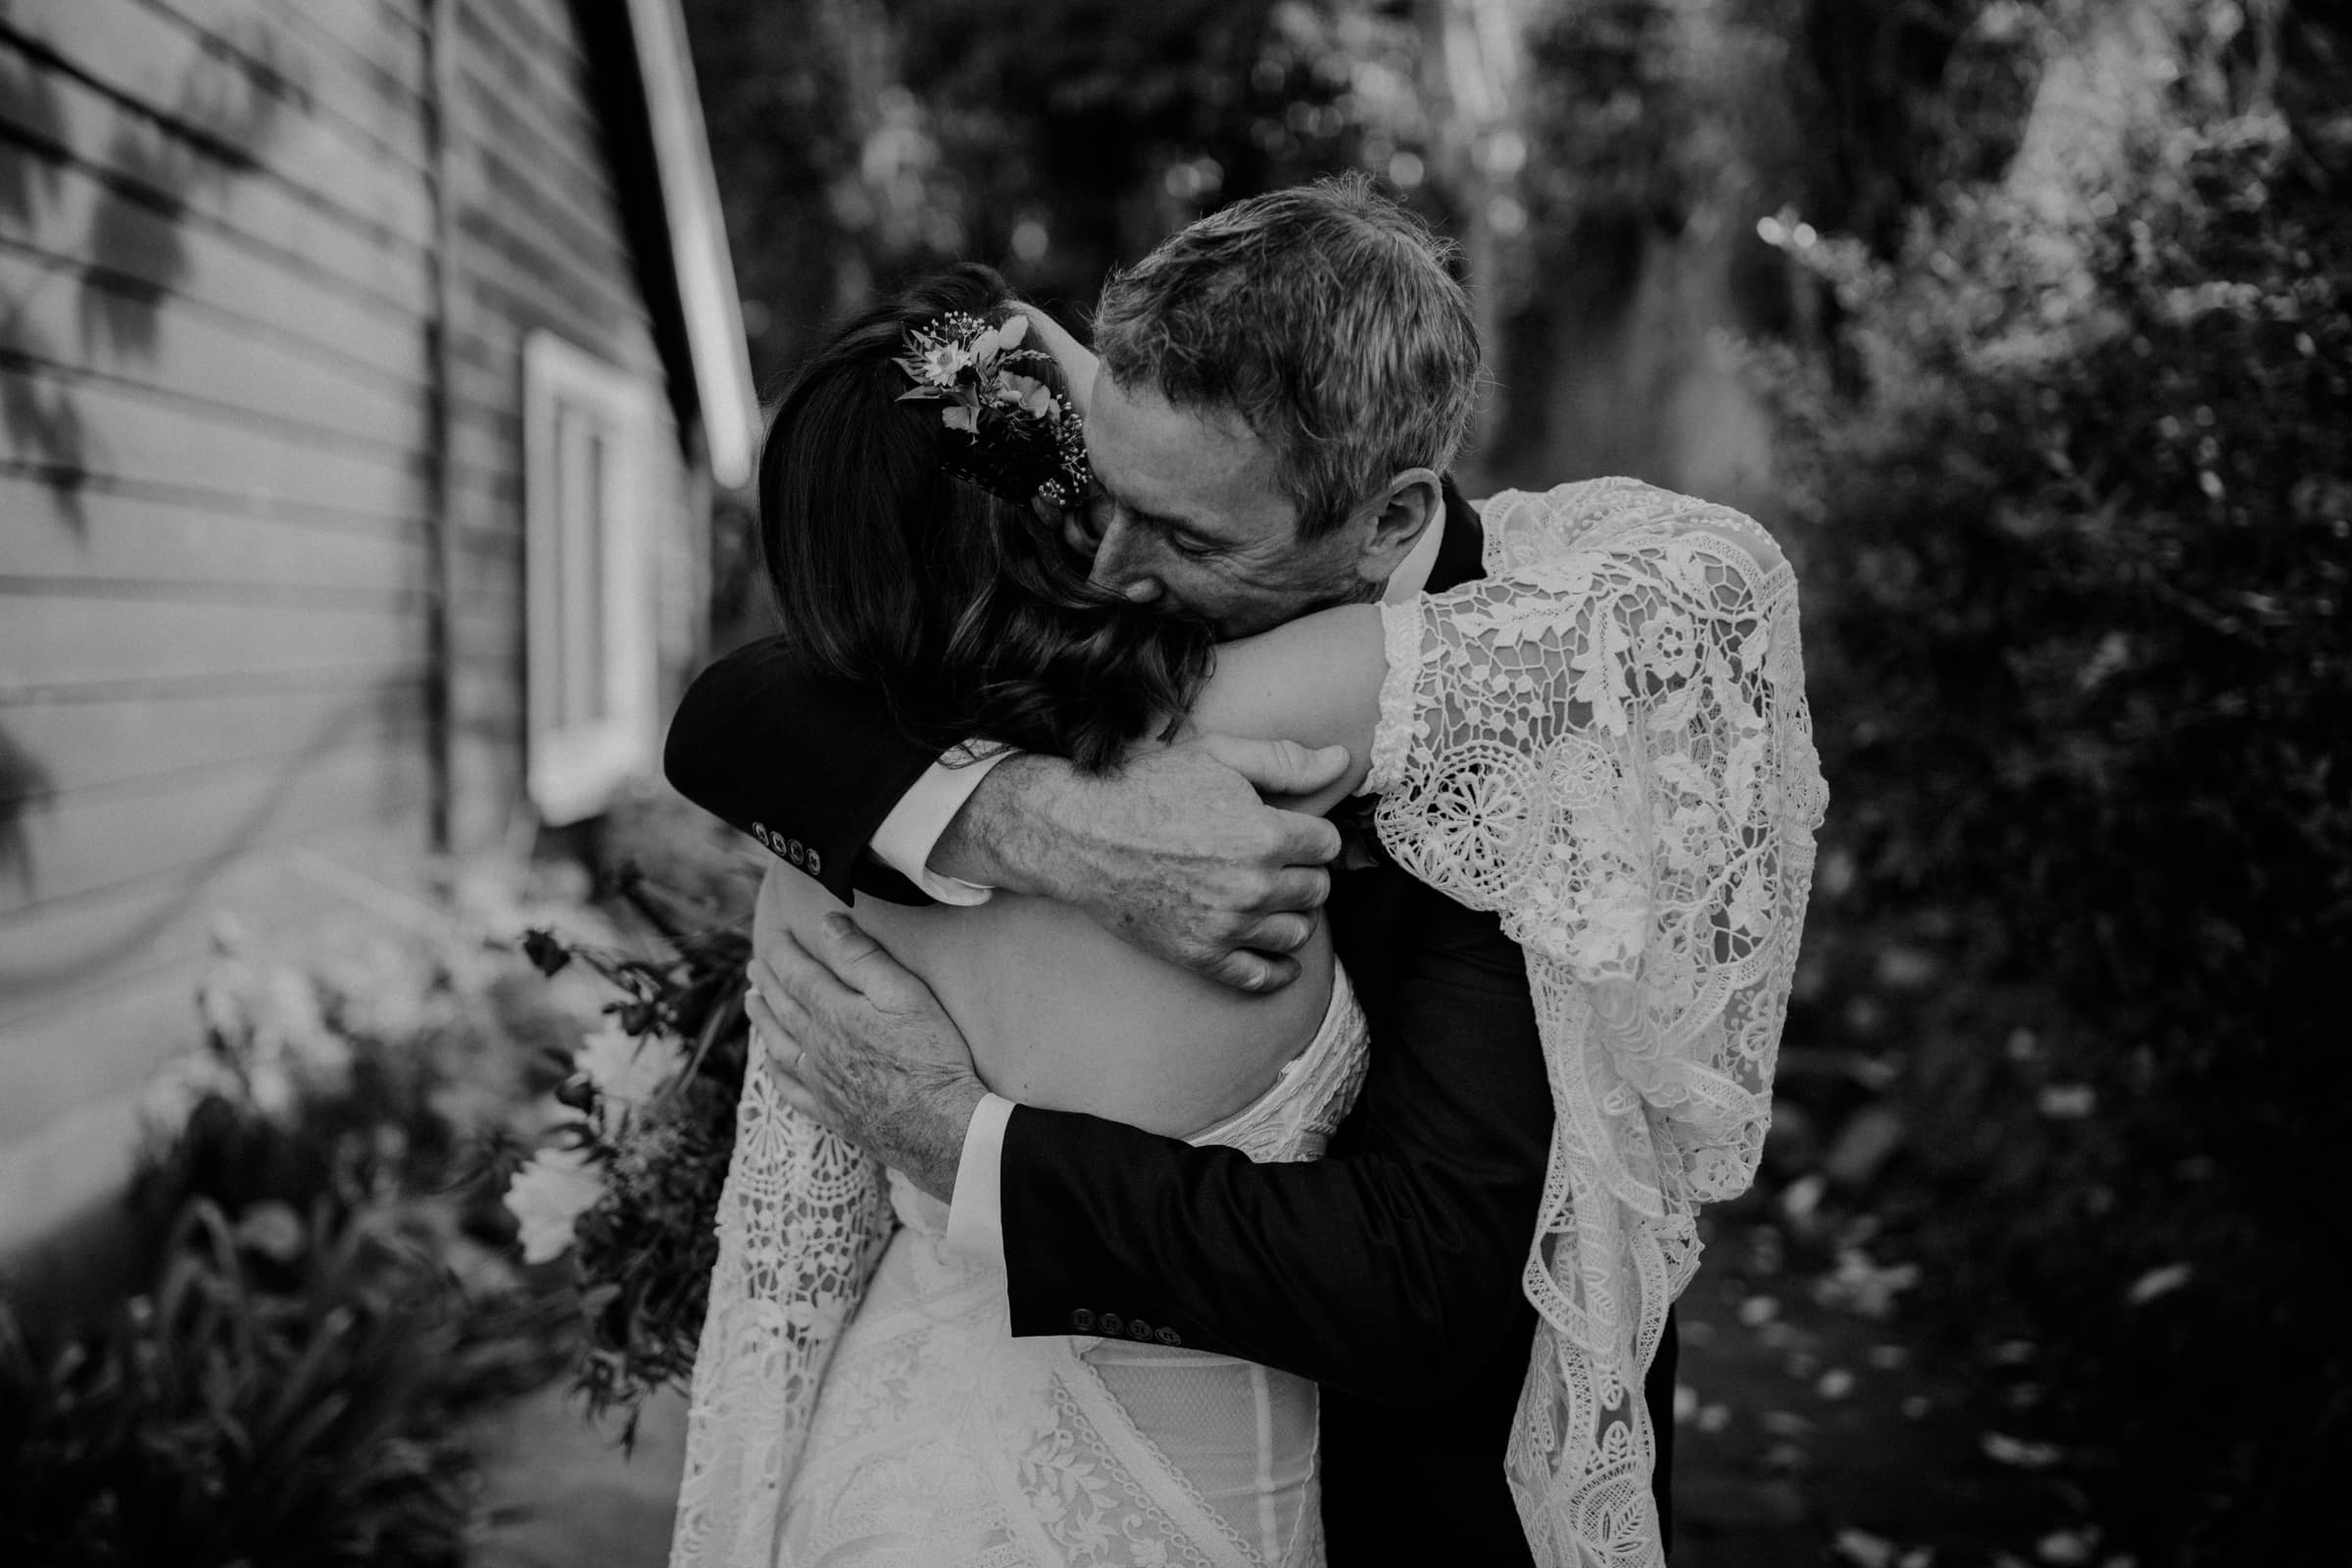 A bride and her father are hugging each other.